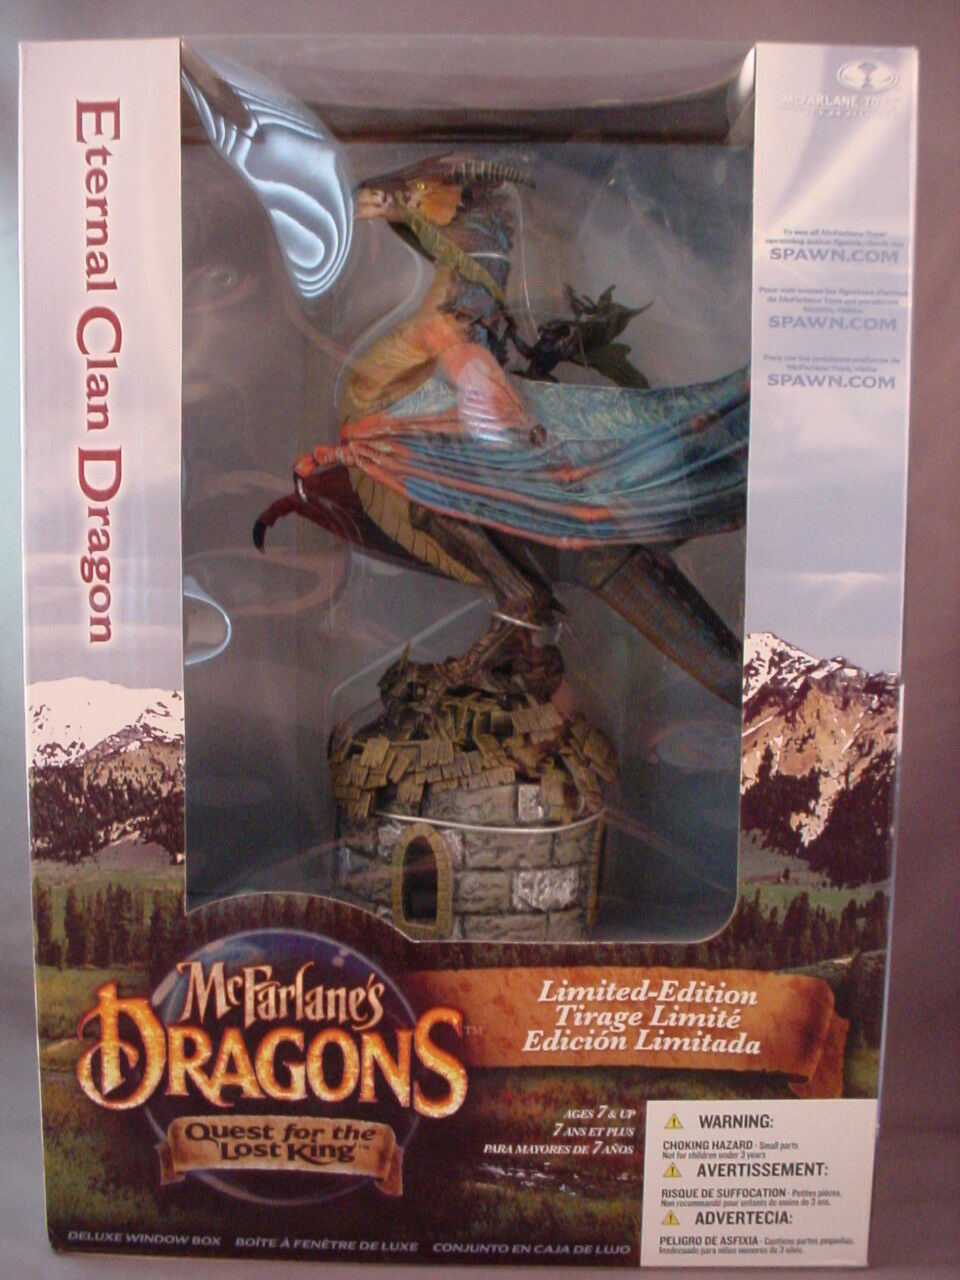 McFARLANE'S DRAGONS S1 ETERNAL CLAN DRAGON IN LIMITED-EDITION DELUXE WINDOW BOX